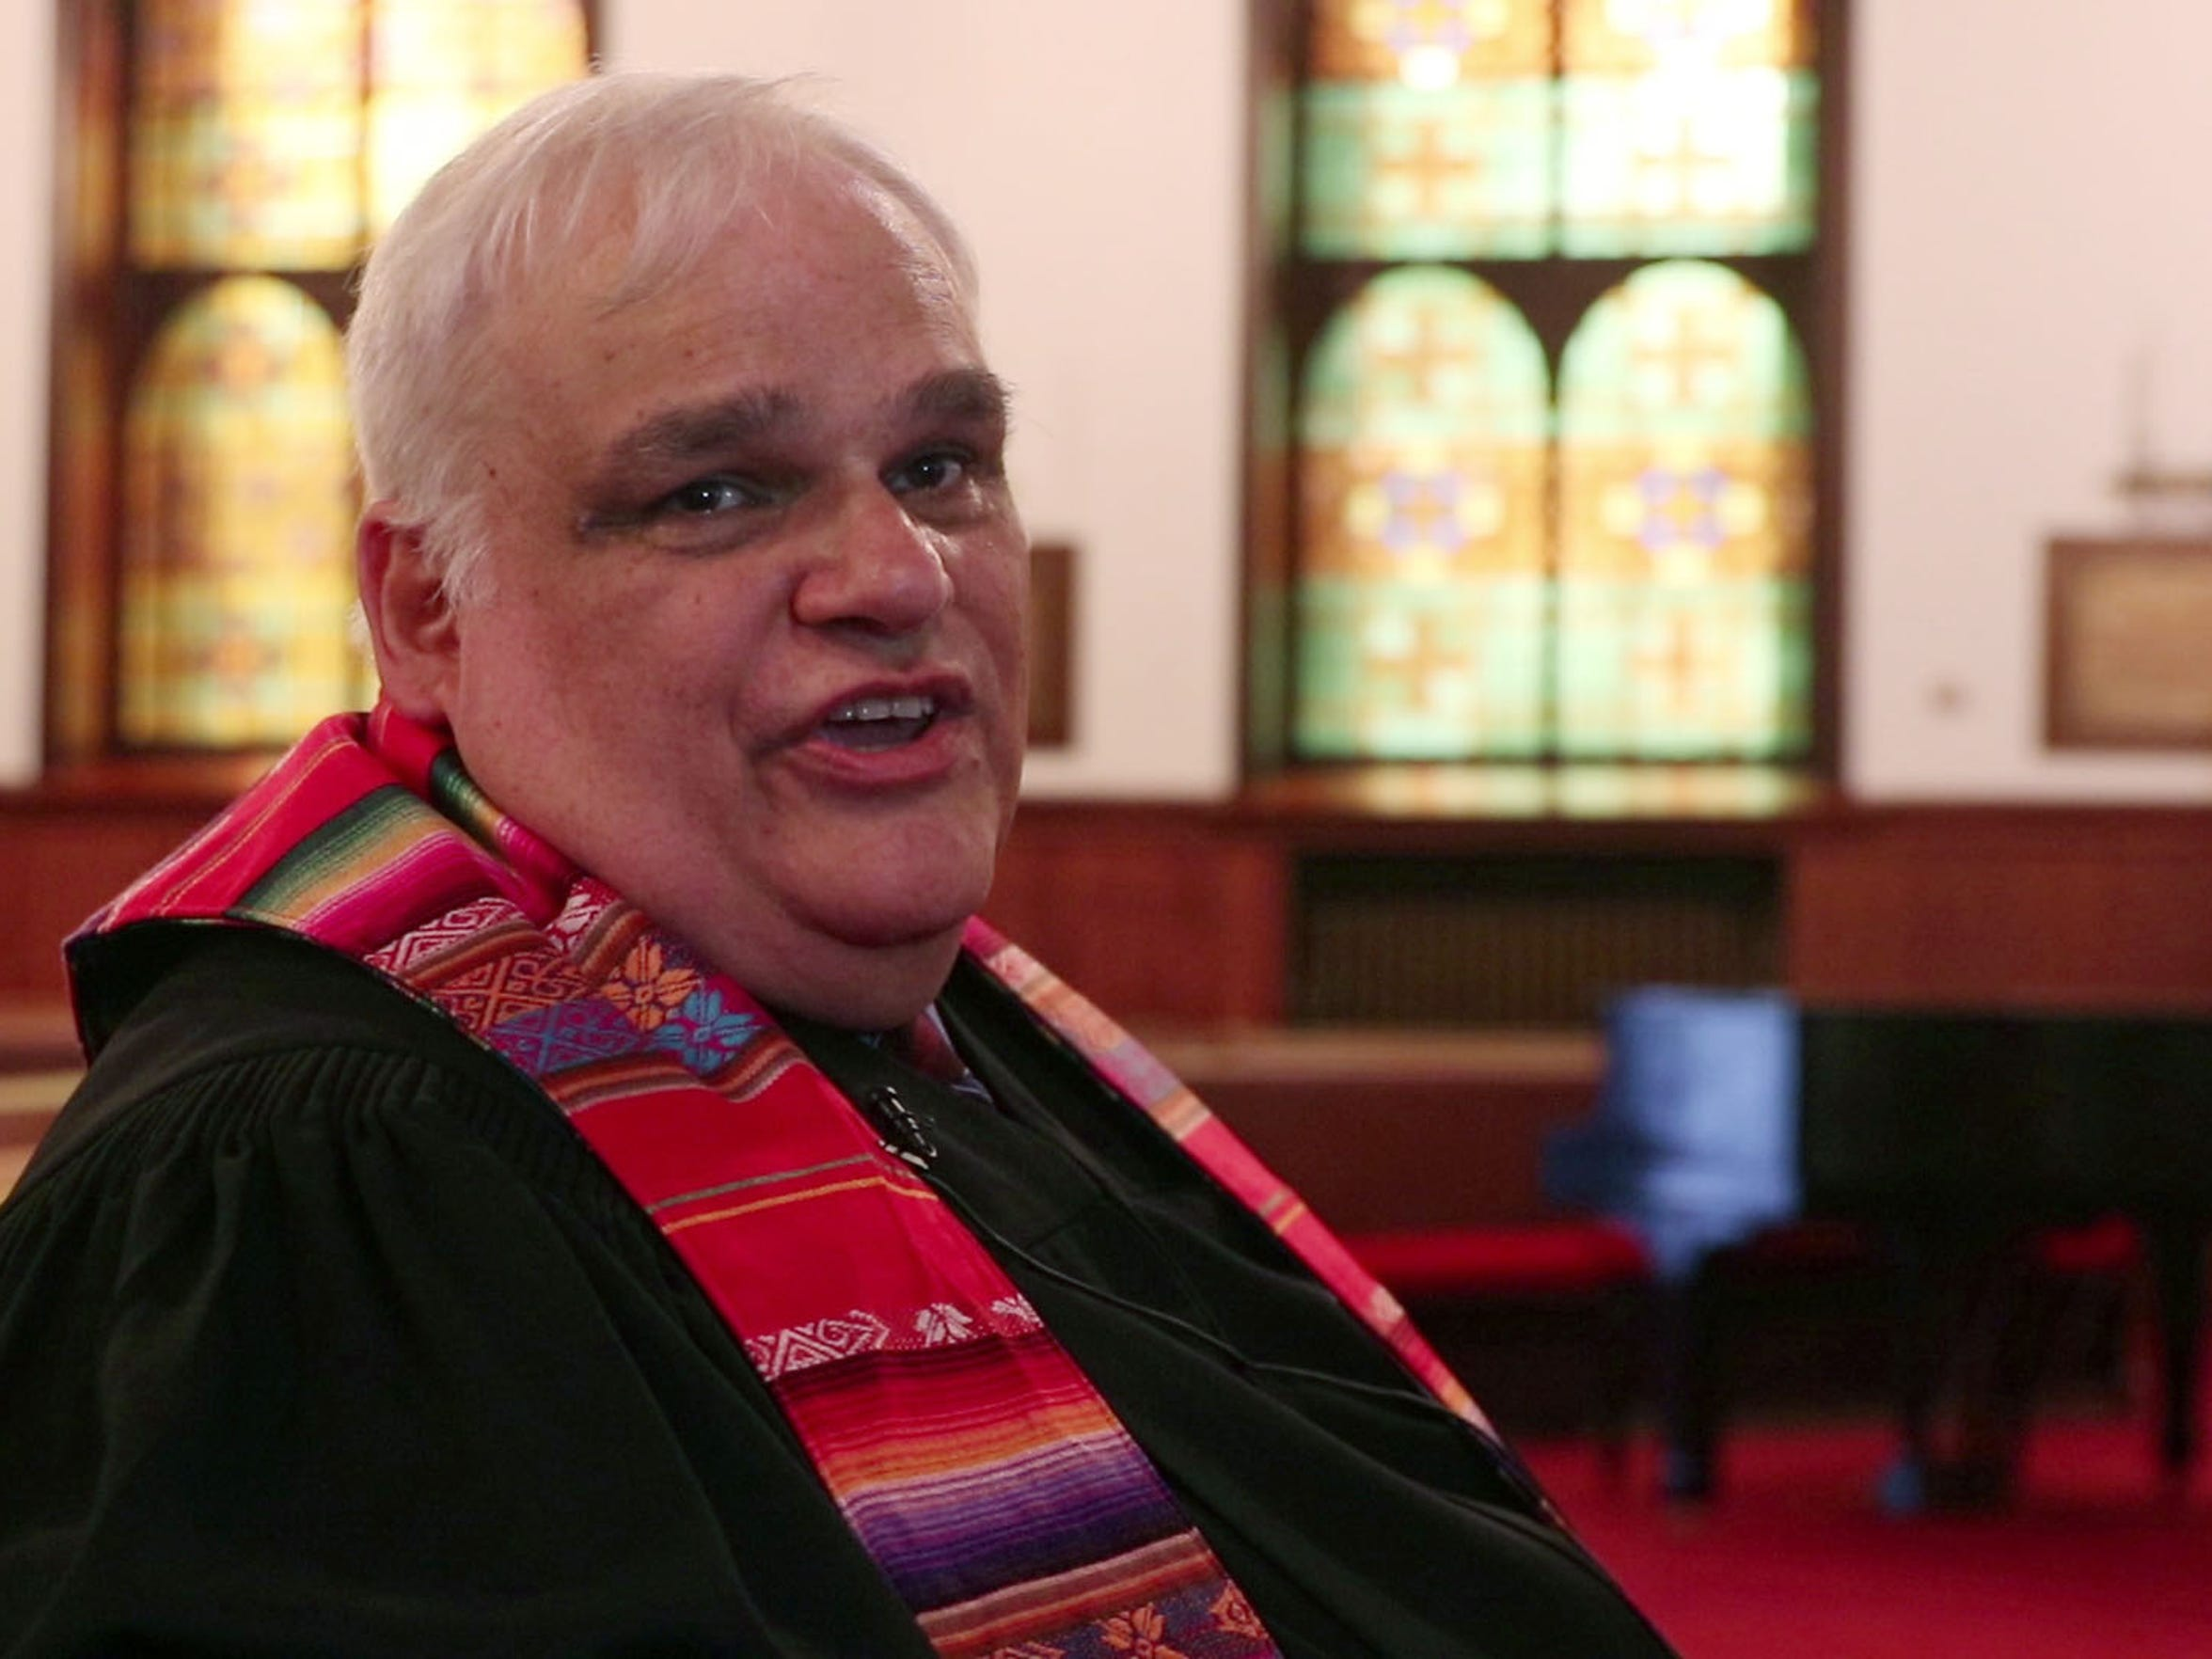 Pastor Rick LaFever talks about the church and its